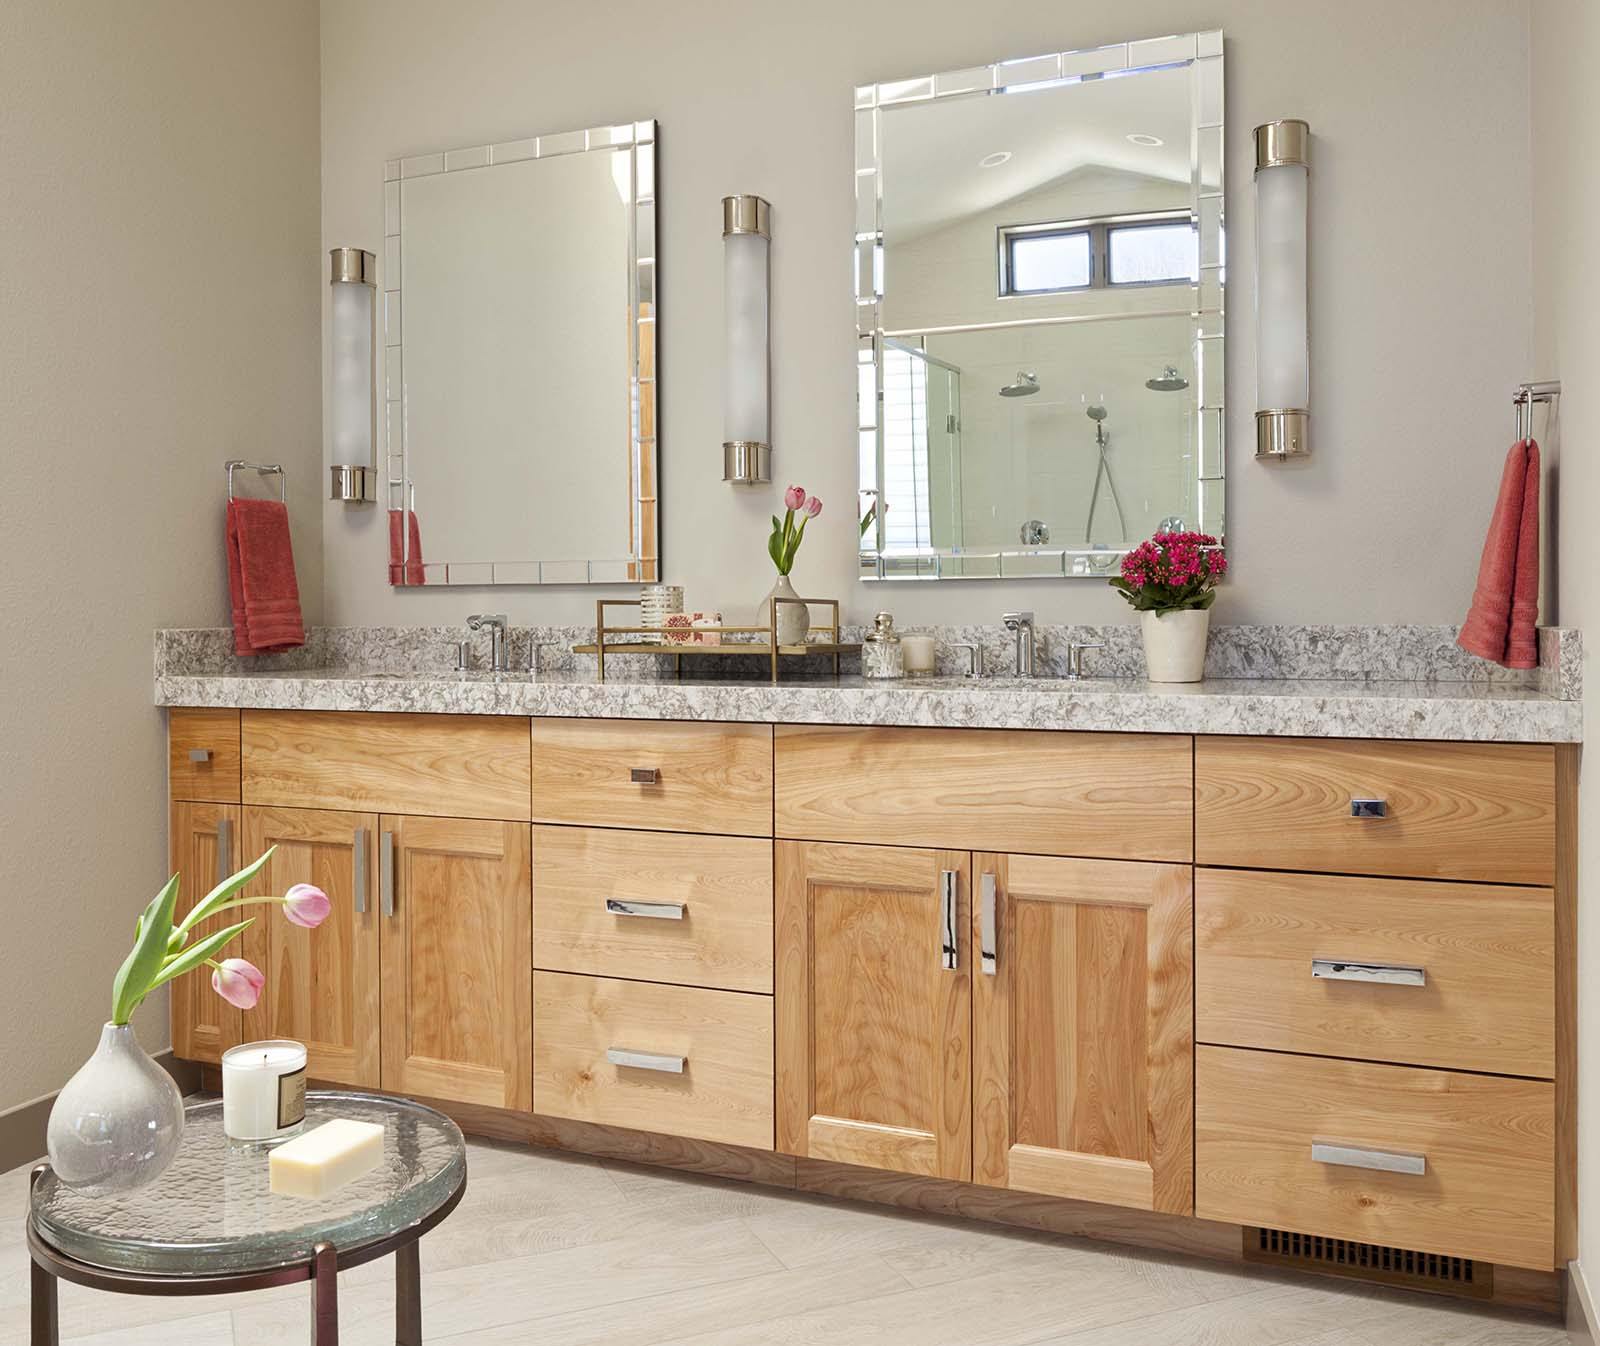 Epic Decorative mirrors add a hint of glamour to the vanity while sconces from Visual Comfort are hung at face height for optimal lighting when beautifying in